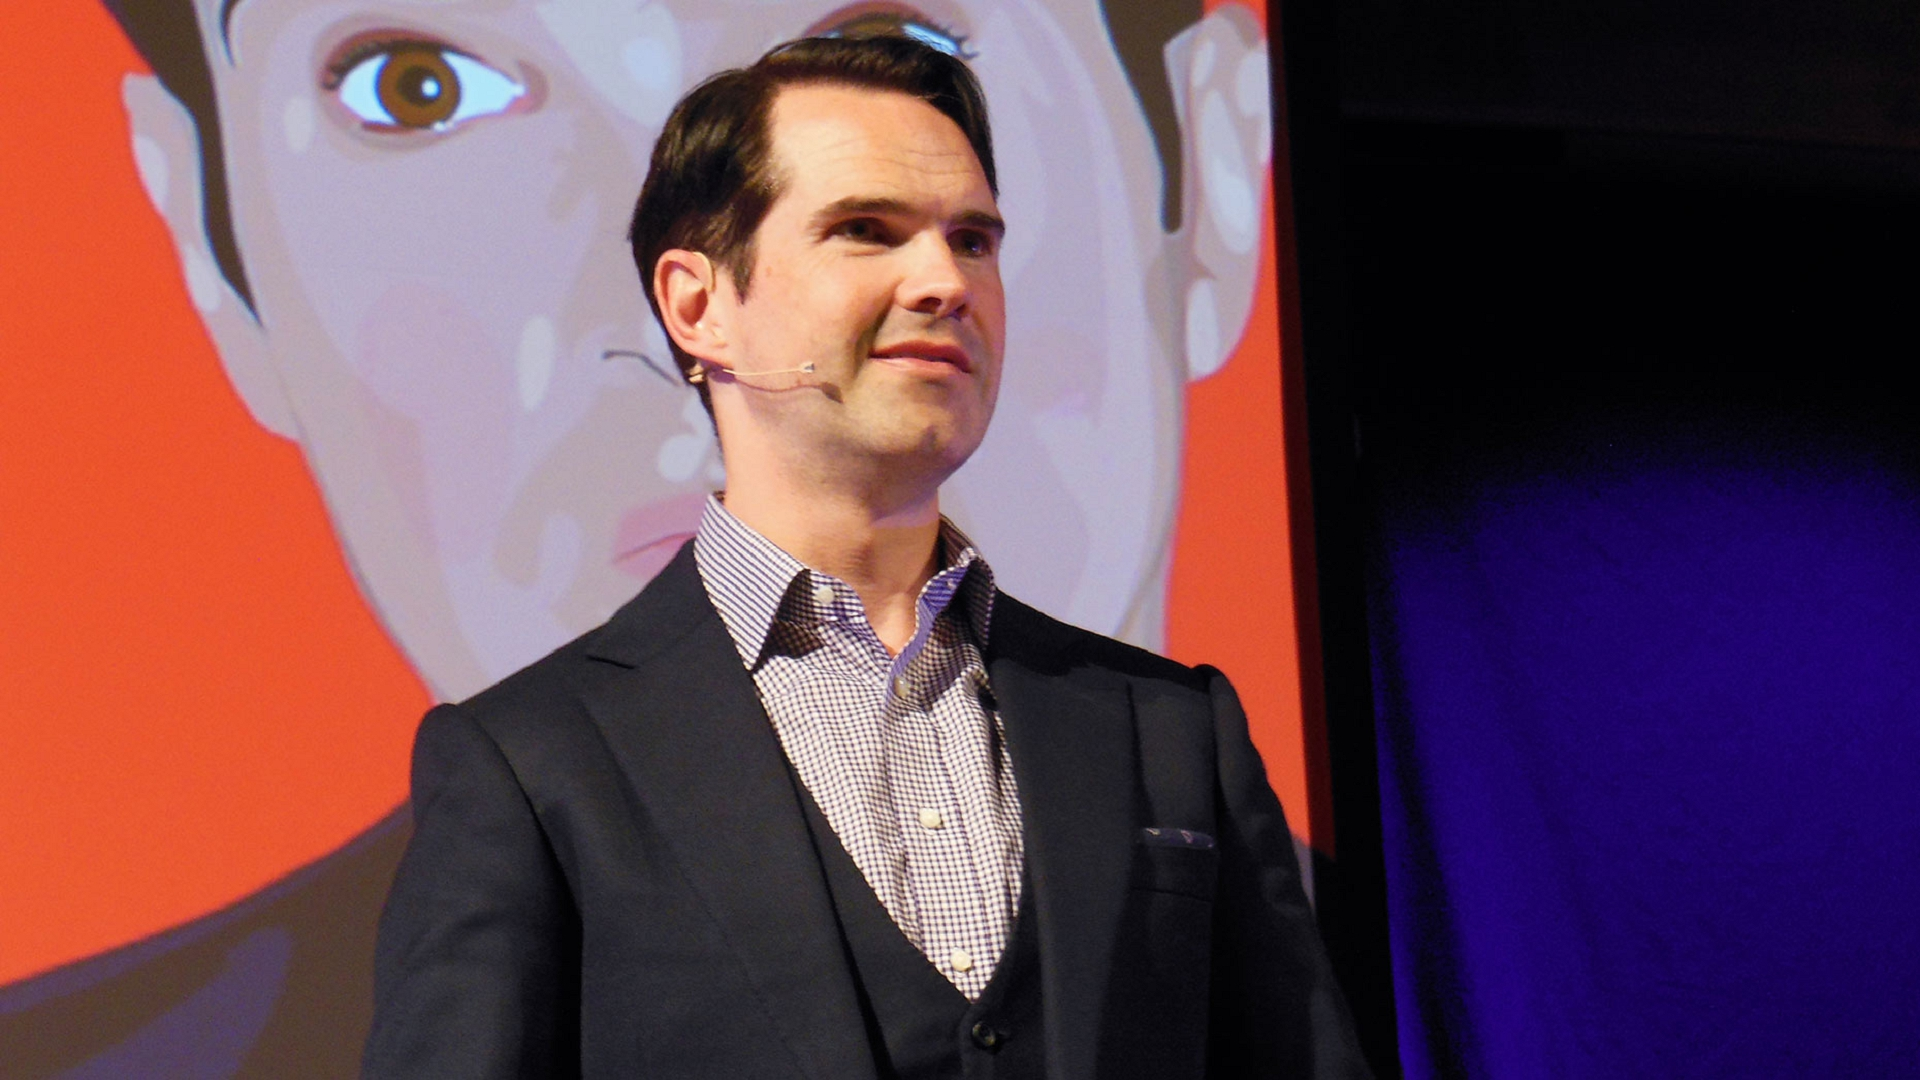 Jimmy Carr Hd Background